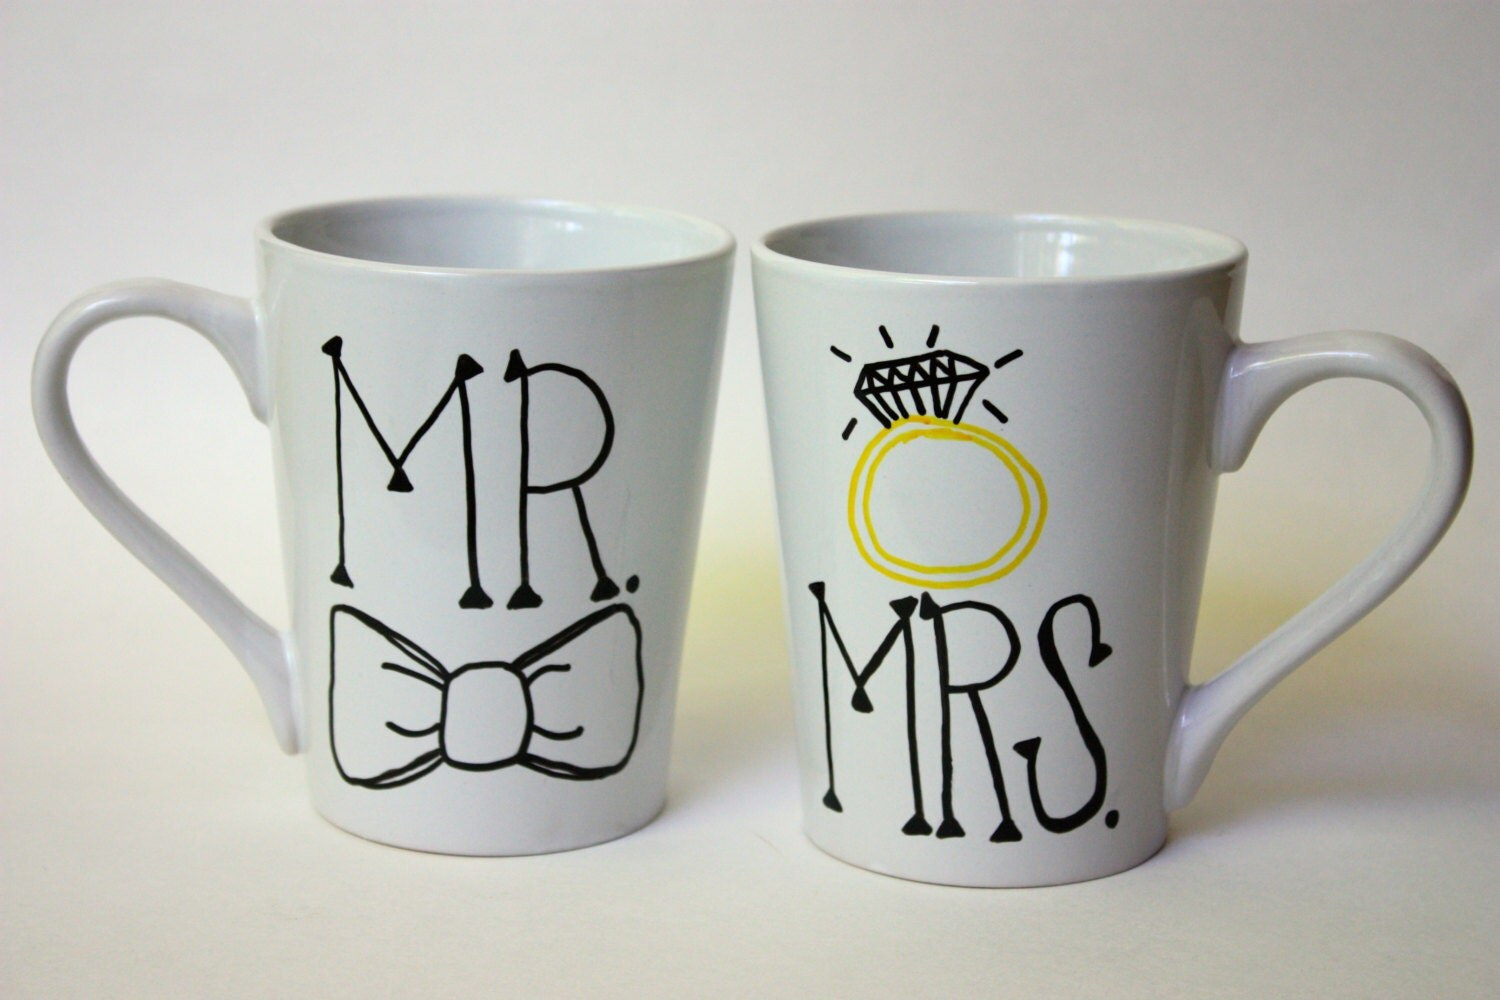 MR. and MRS. coffee mugs wedding gift tea wedding by KatyGirlGoods